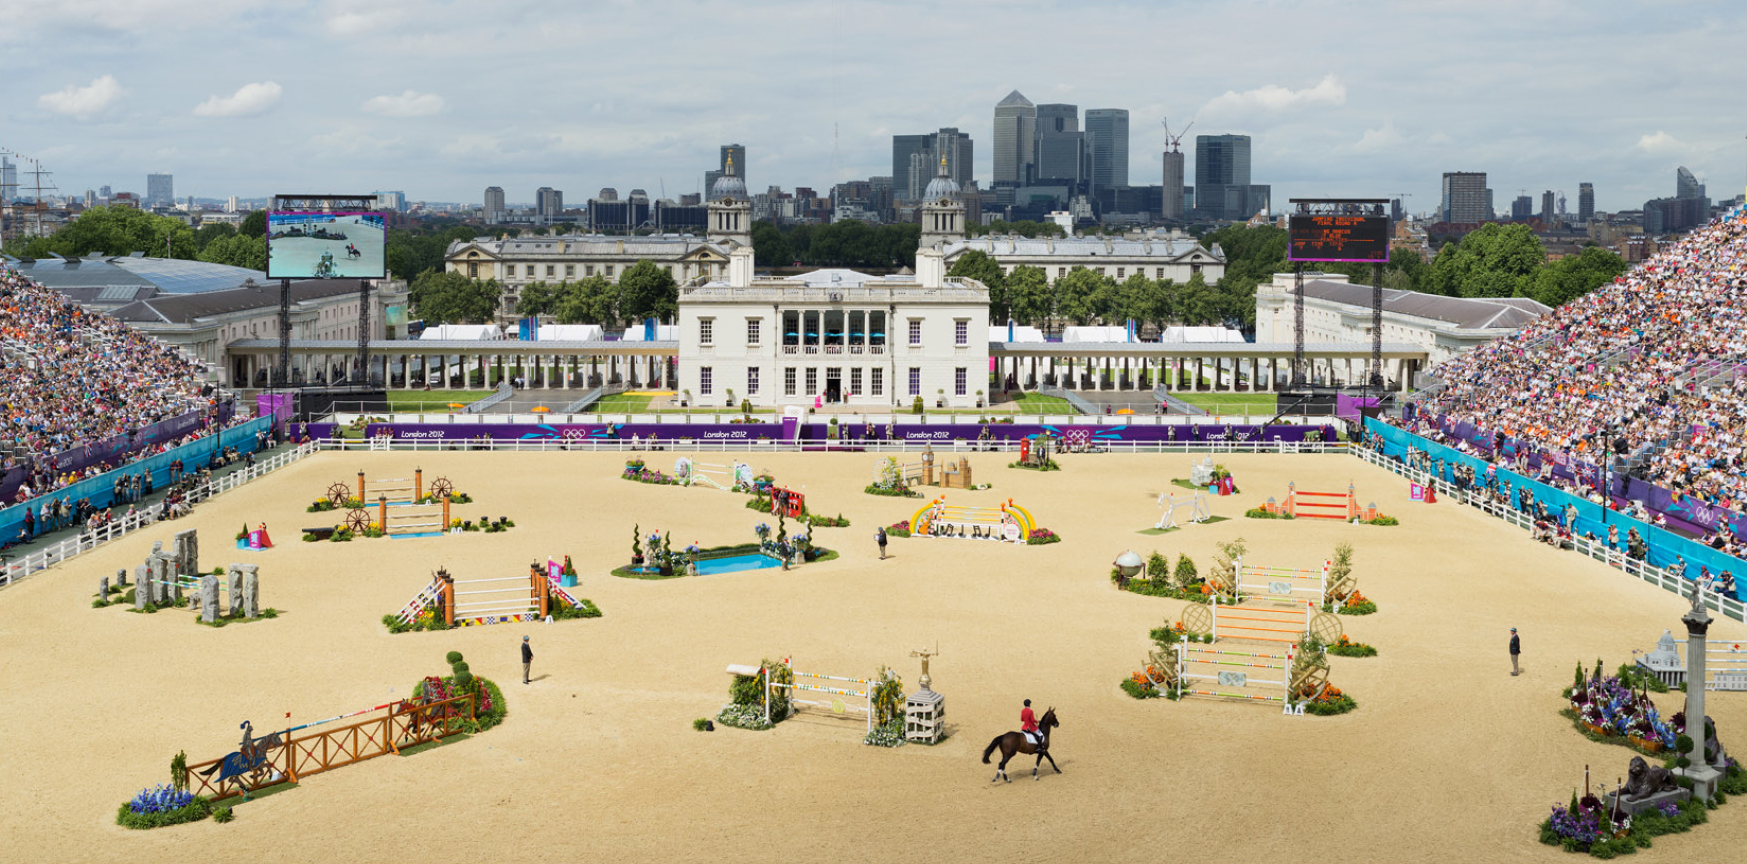 THE FULL PICTURE - SIMON ROBERTS - It's felt like a long week, so I thought I would put up another ' The Full Picture' feature to help you over the line to the weekend. With this image we will be travelling back to the summer of 2012 with Simon Roberts as he photographed the Olympics in London…